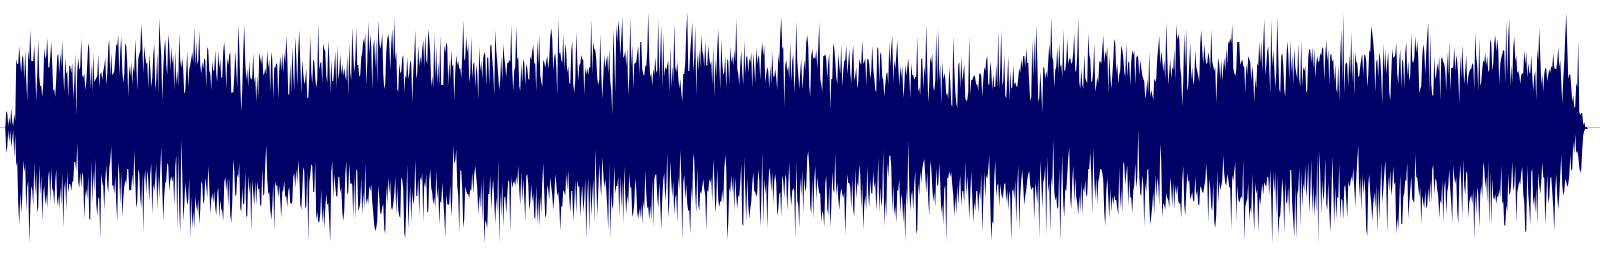 waveform of track #130929